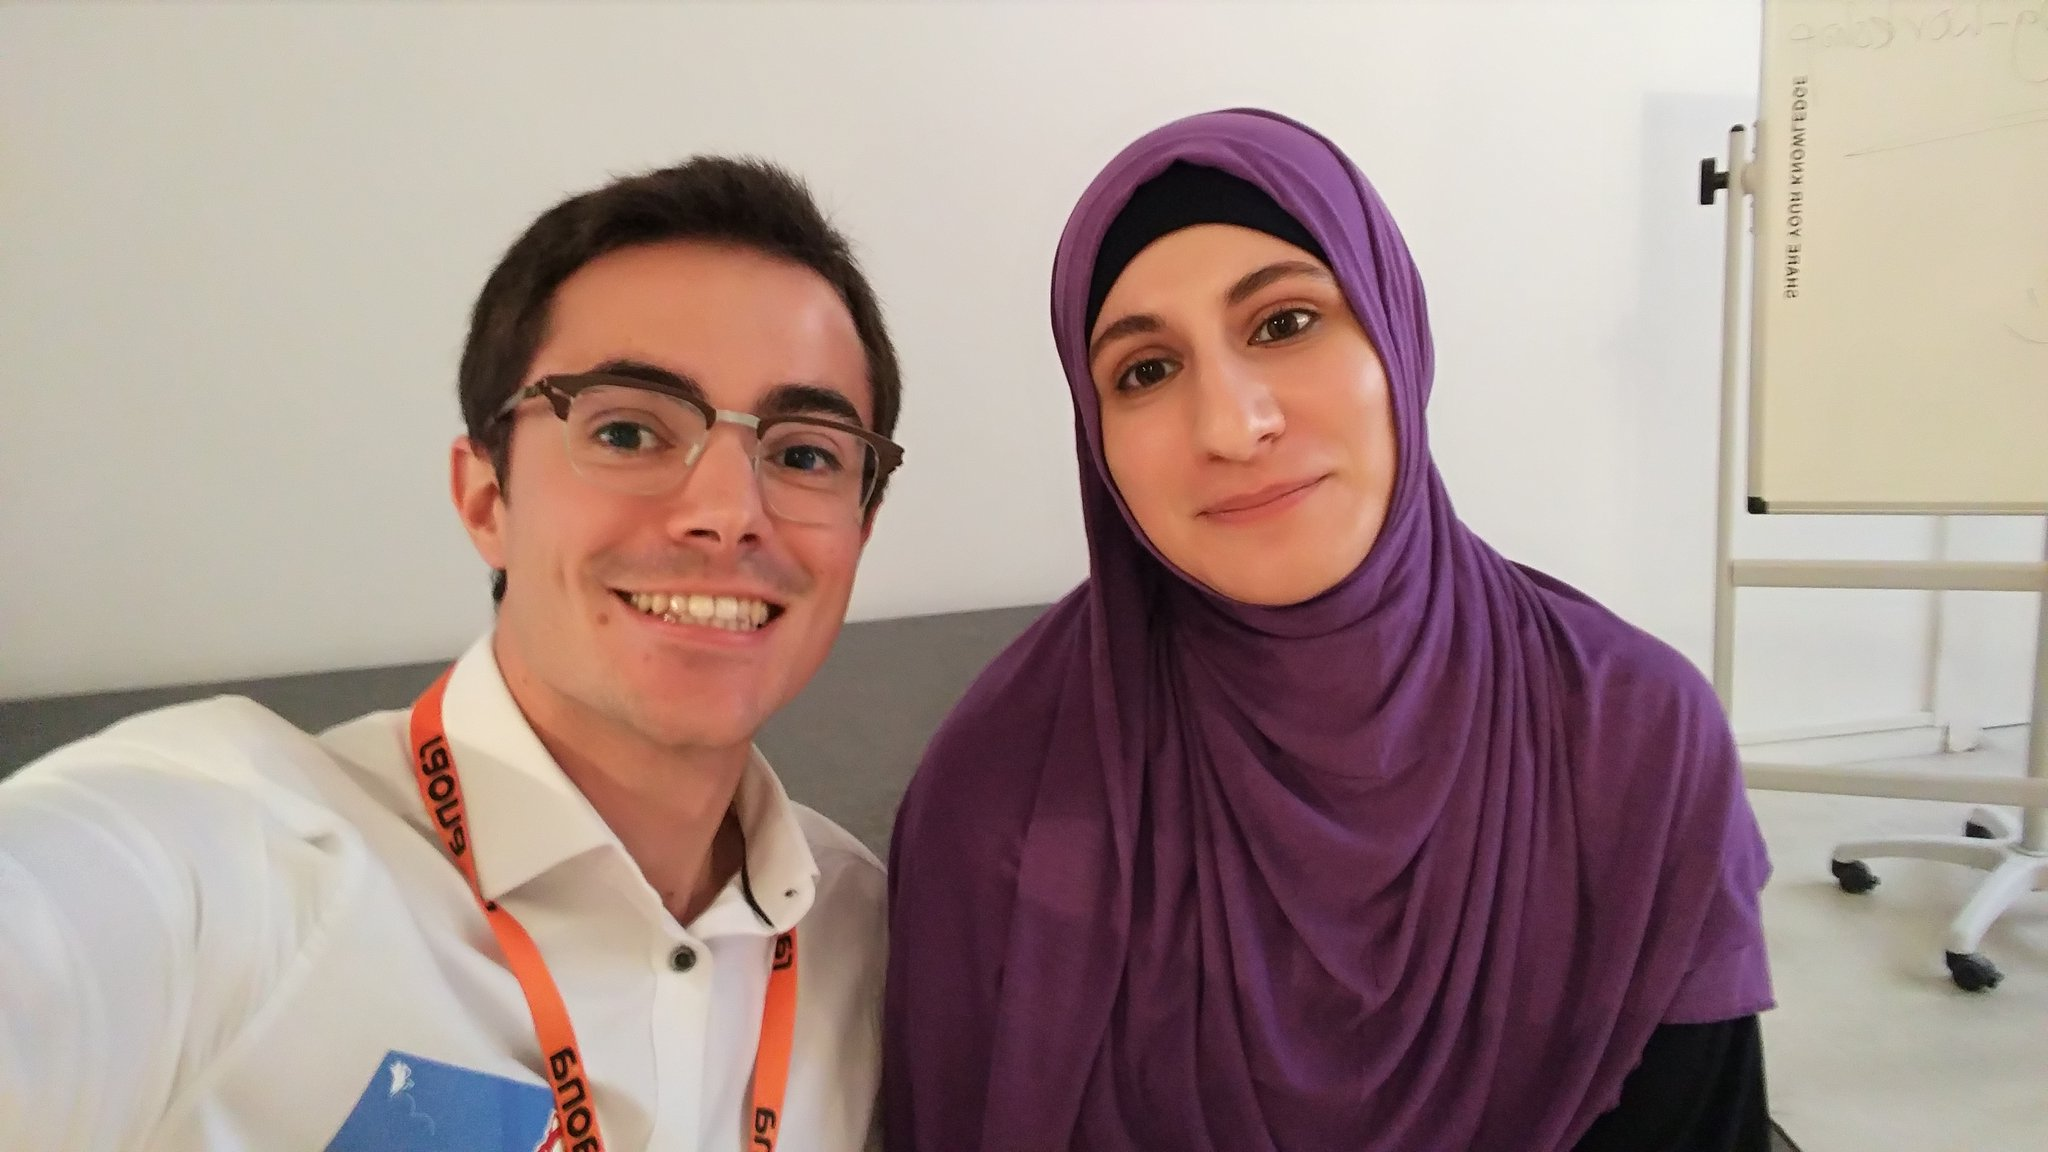 Amazing SVG workshop with @SaraSoueidan in Barcelona! #smashingconf https://t.co/iJG8hEbnz4